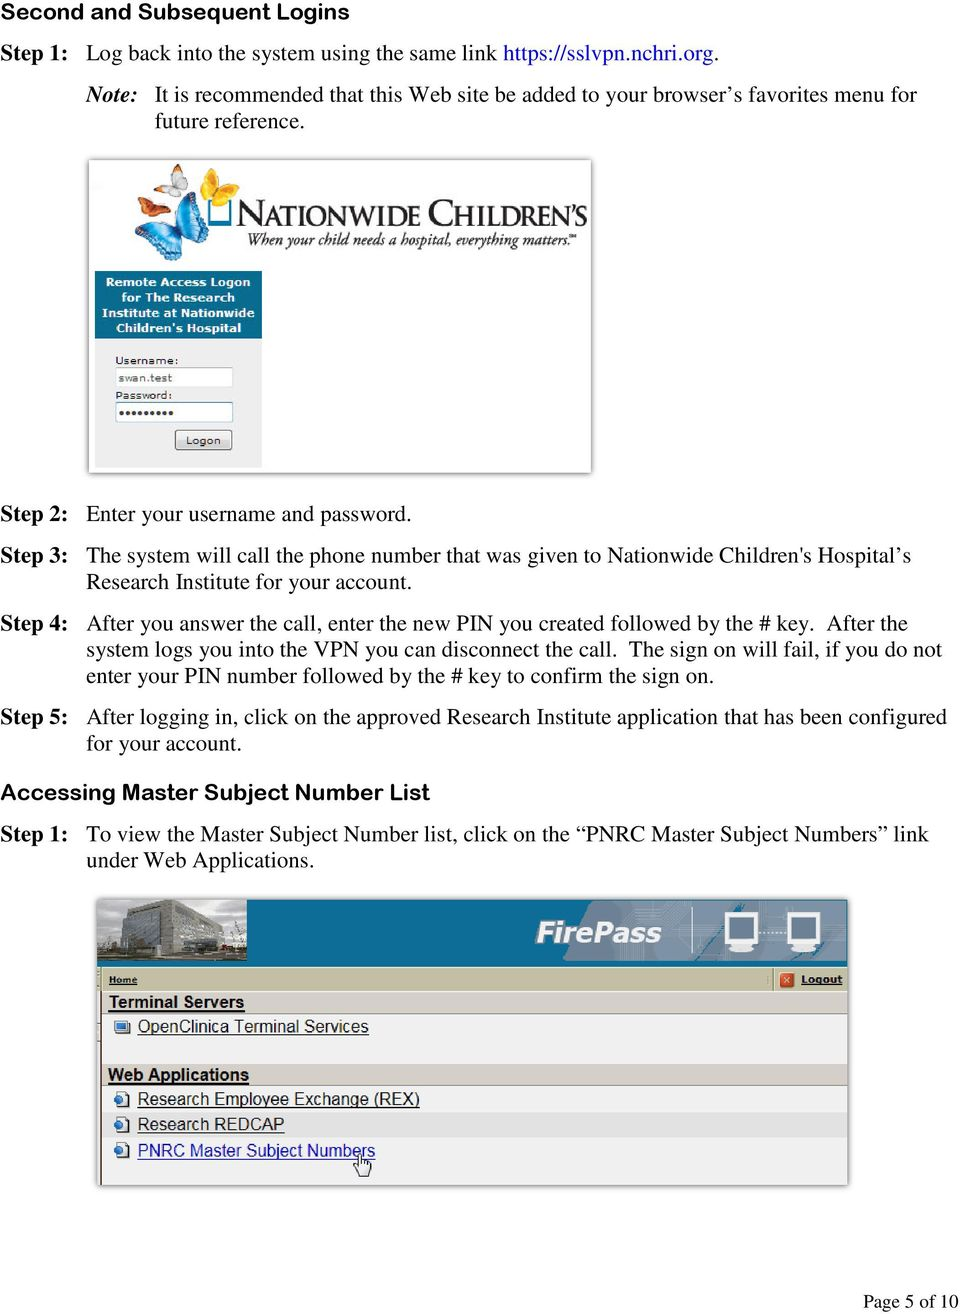 Step 3: The system will call the phone number that was given to Nationwide Children's Hospital s Research Institute for your account.